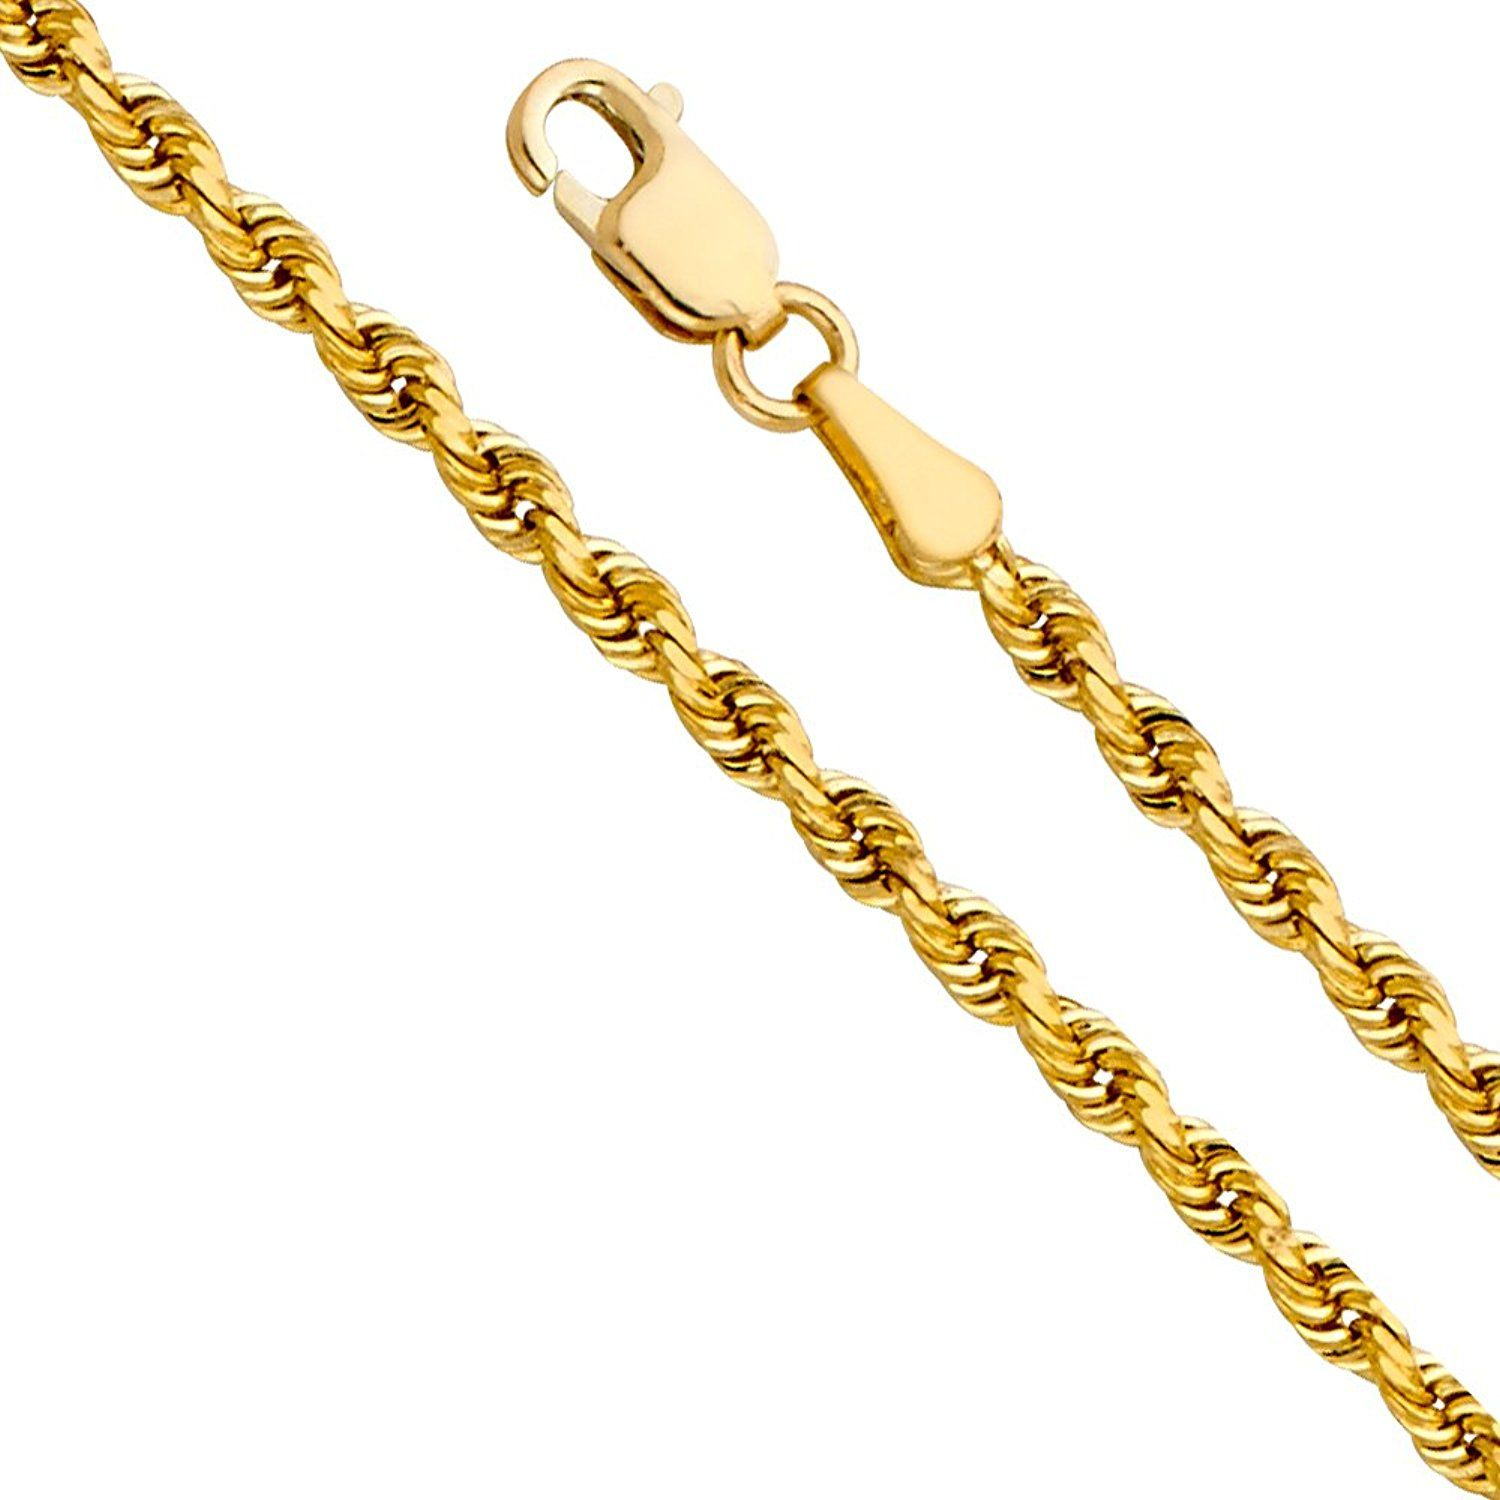 K yellow gold solid mm solid rope diamond cut chain necklace with